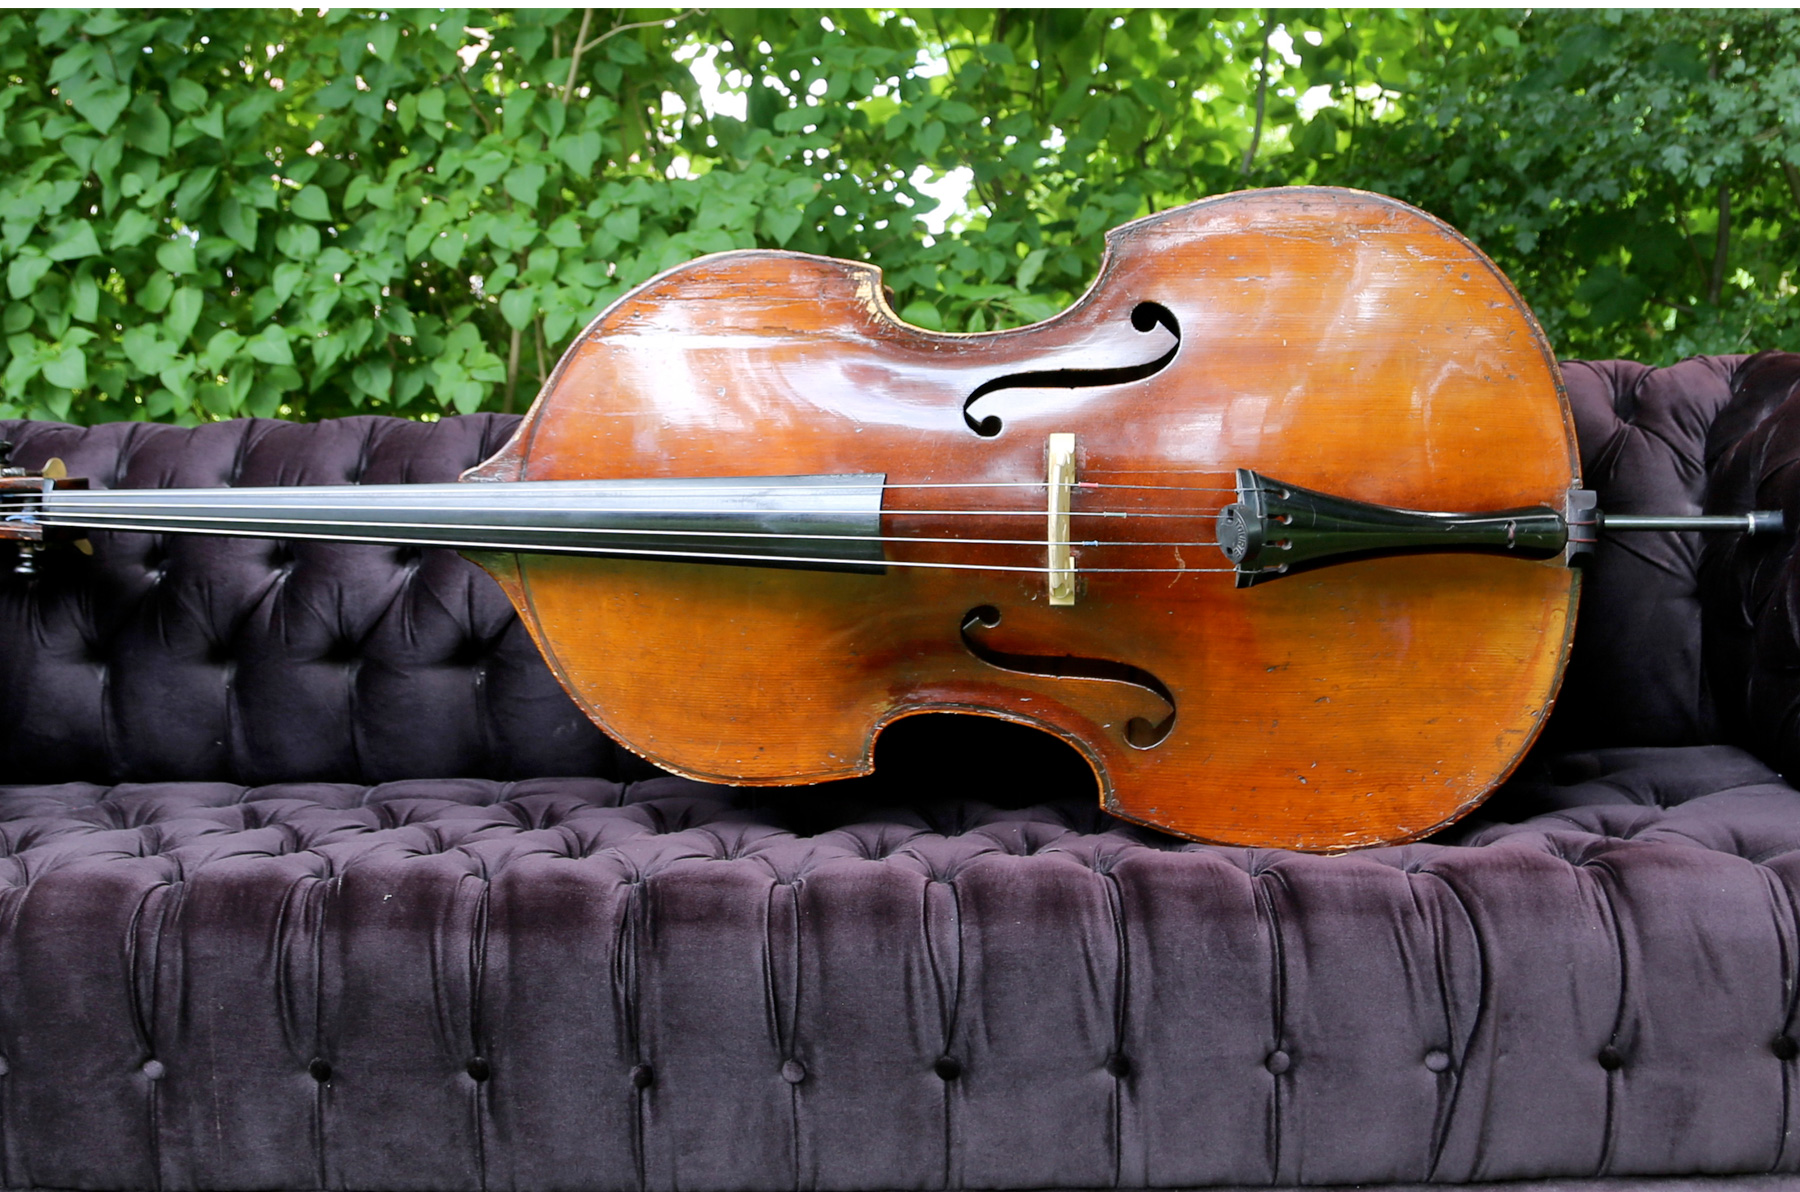 UPRIGHT BASS LESSONS in WINTER PARK, FL